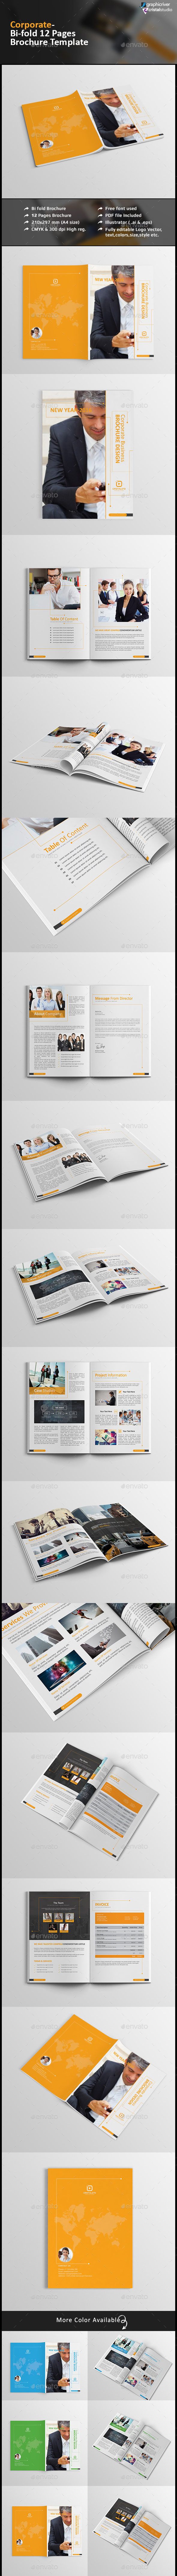 Corporate Business Brochure-12 Pages - Corporate Brochures